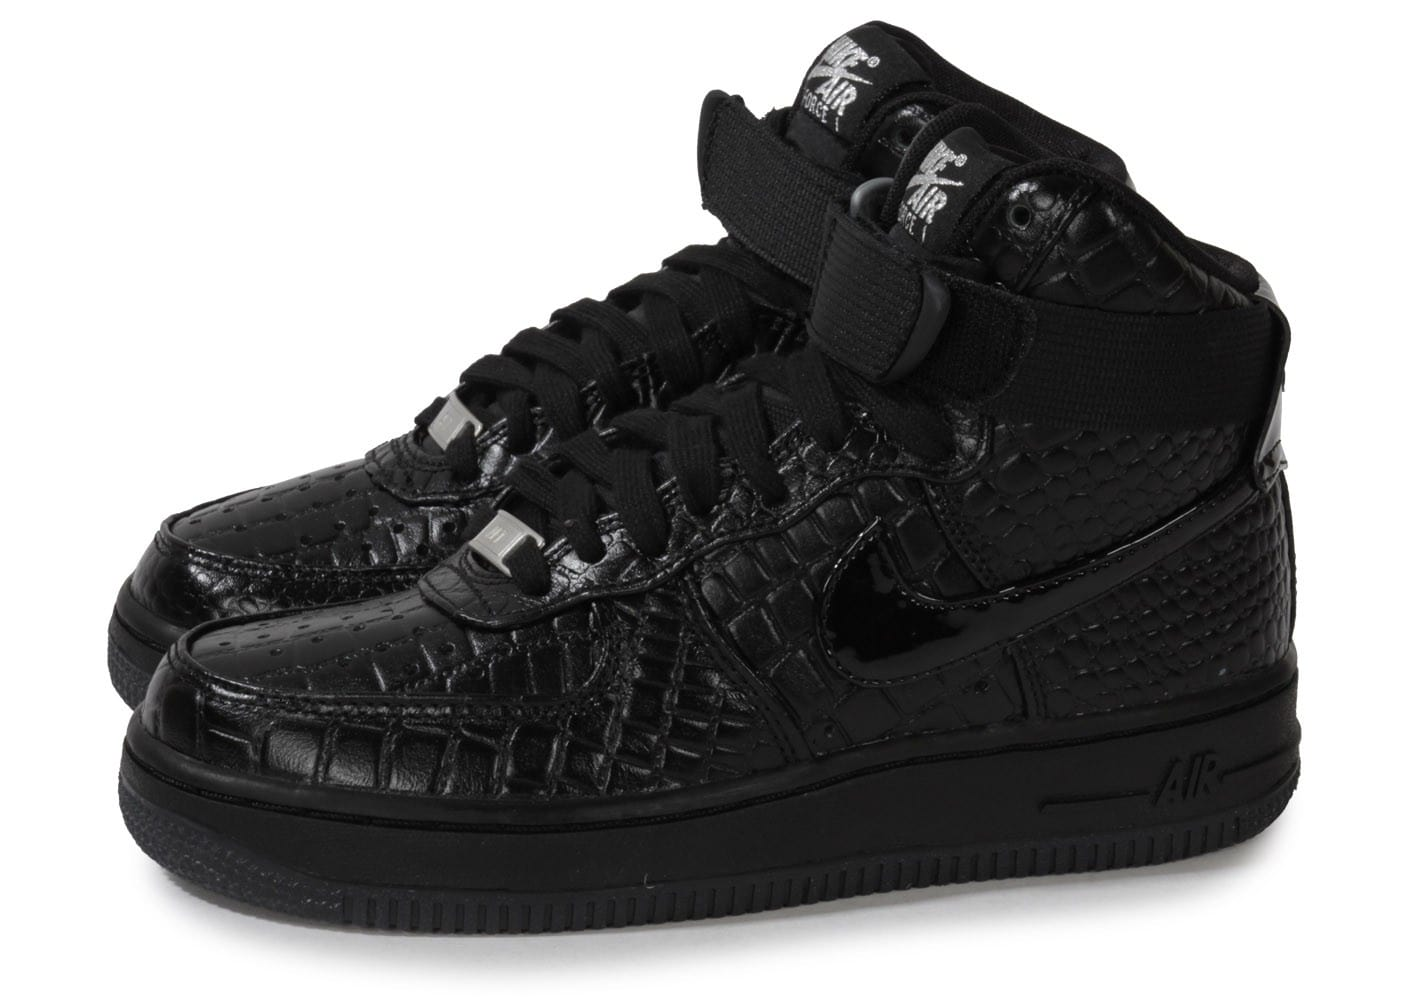 Croco Noire Air Hi Nike Chausport 1 Chaussures Force PkXiZTuO